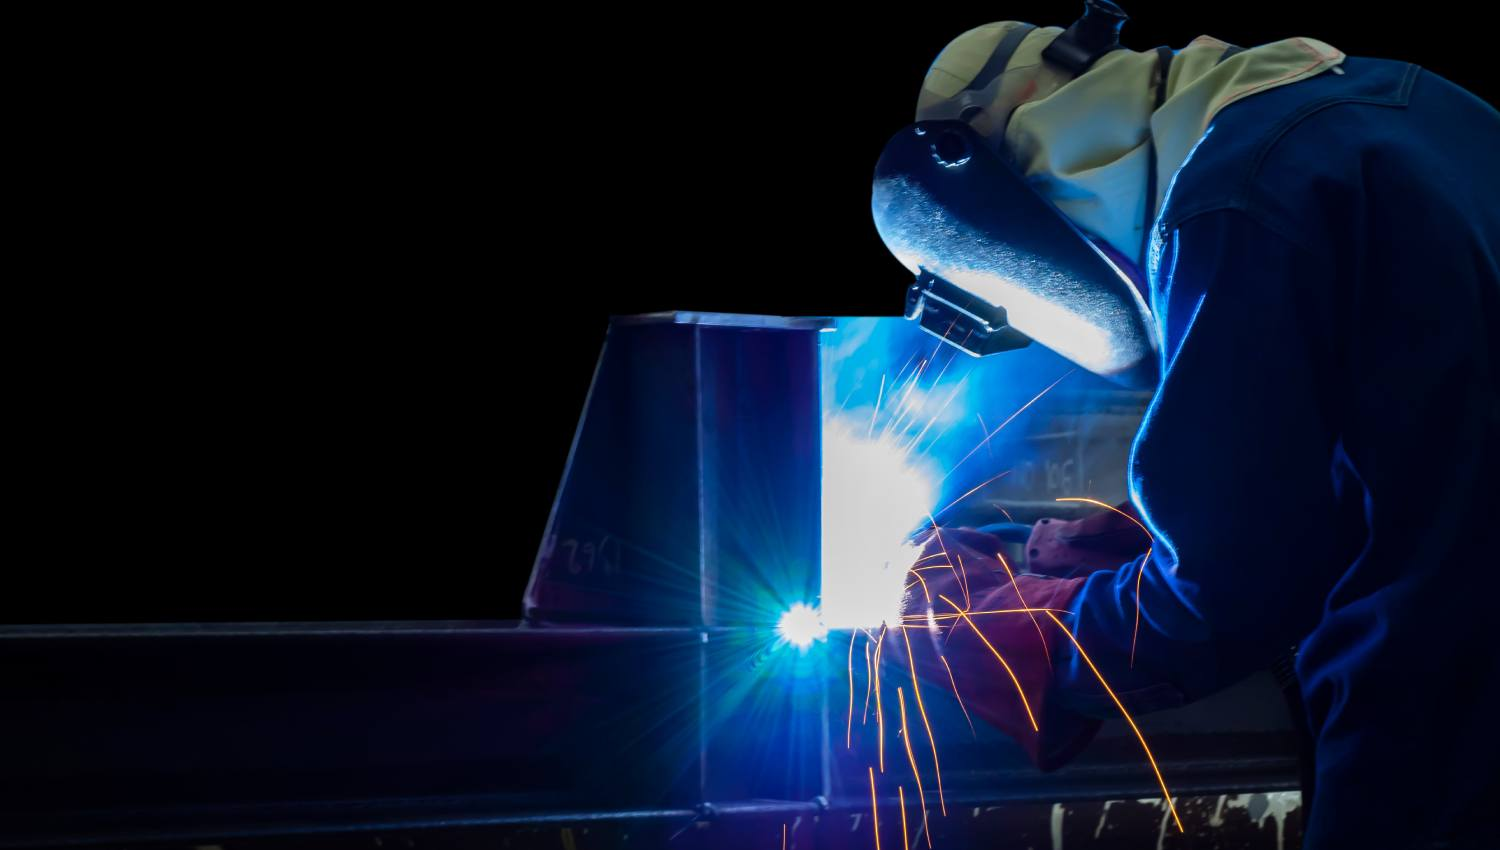 Man welding pipework fabrication welding services Hythe Marine Services